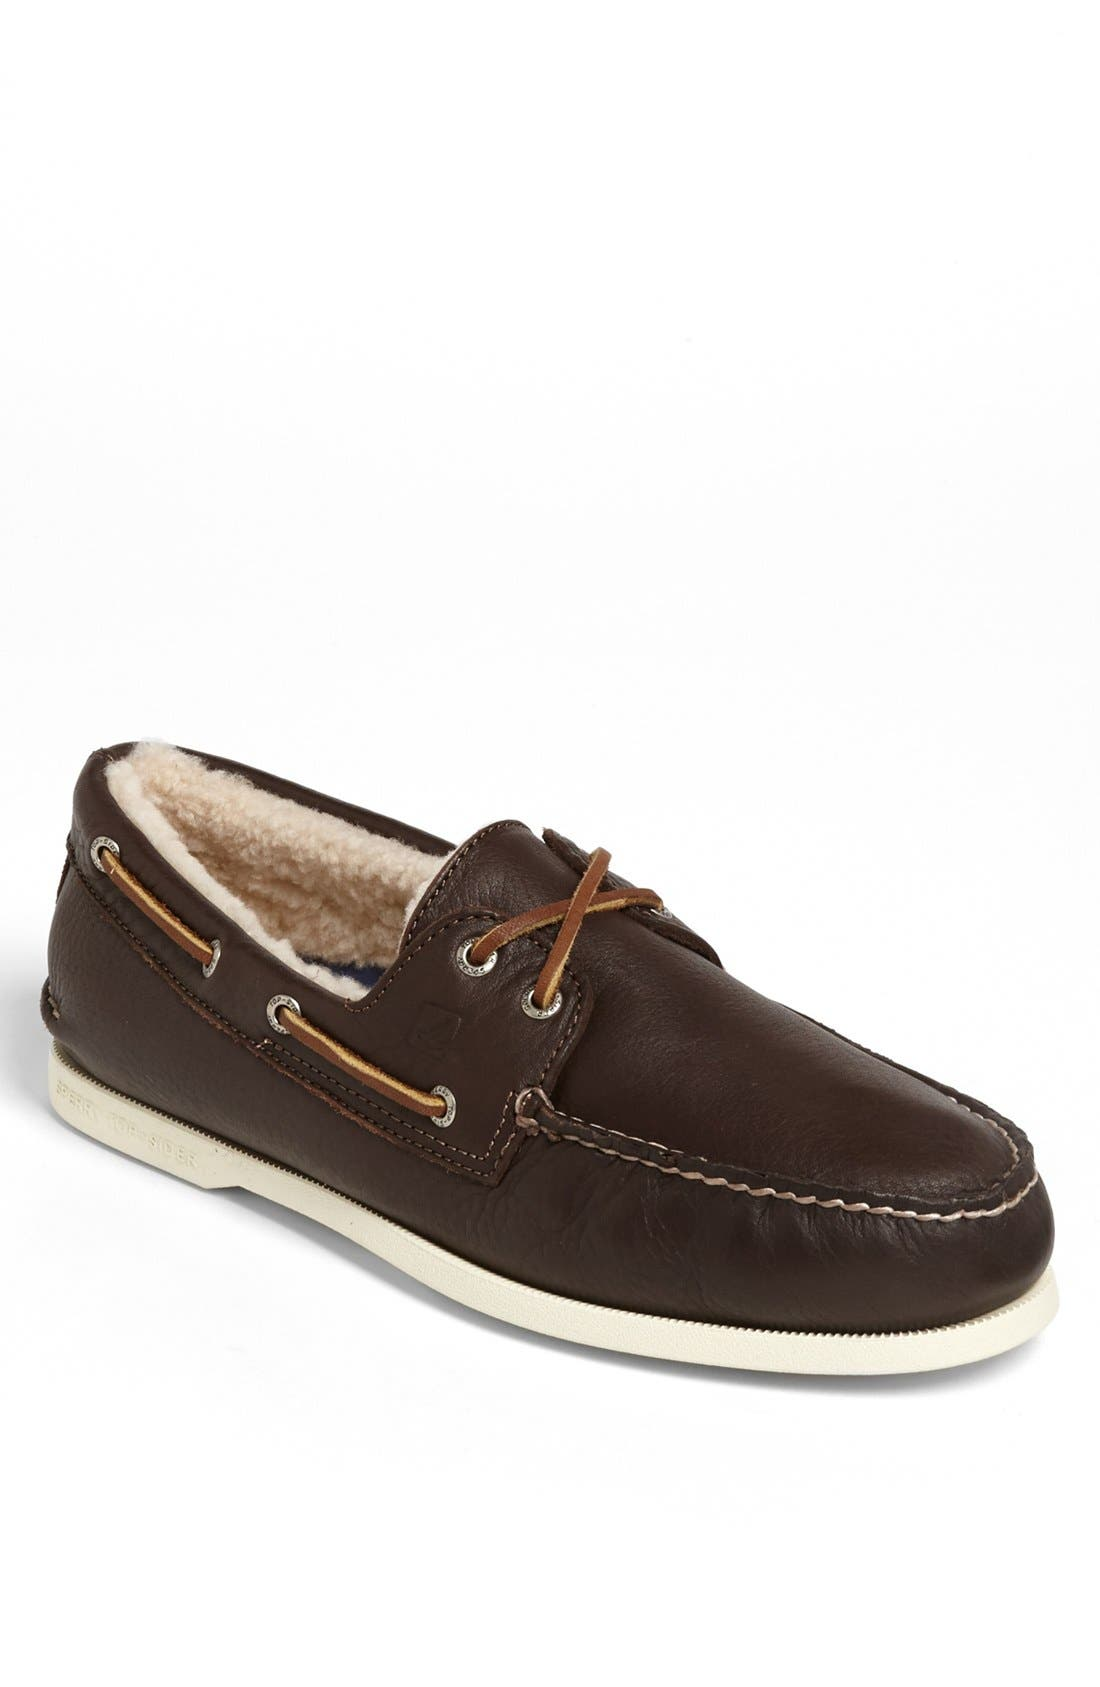 Main Image - Sperry Top-Sider® 'Authentic Original - Winter' Boat Shoe